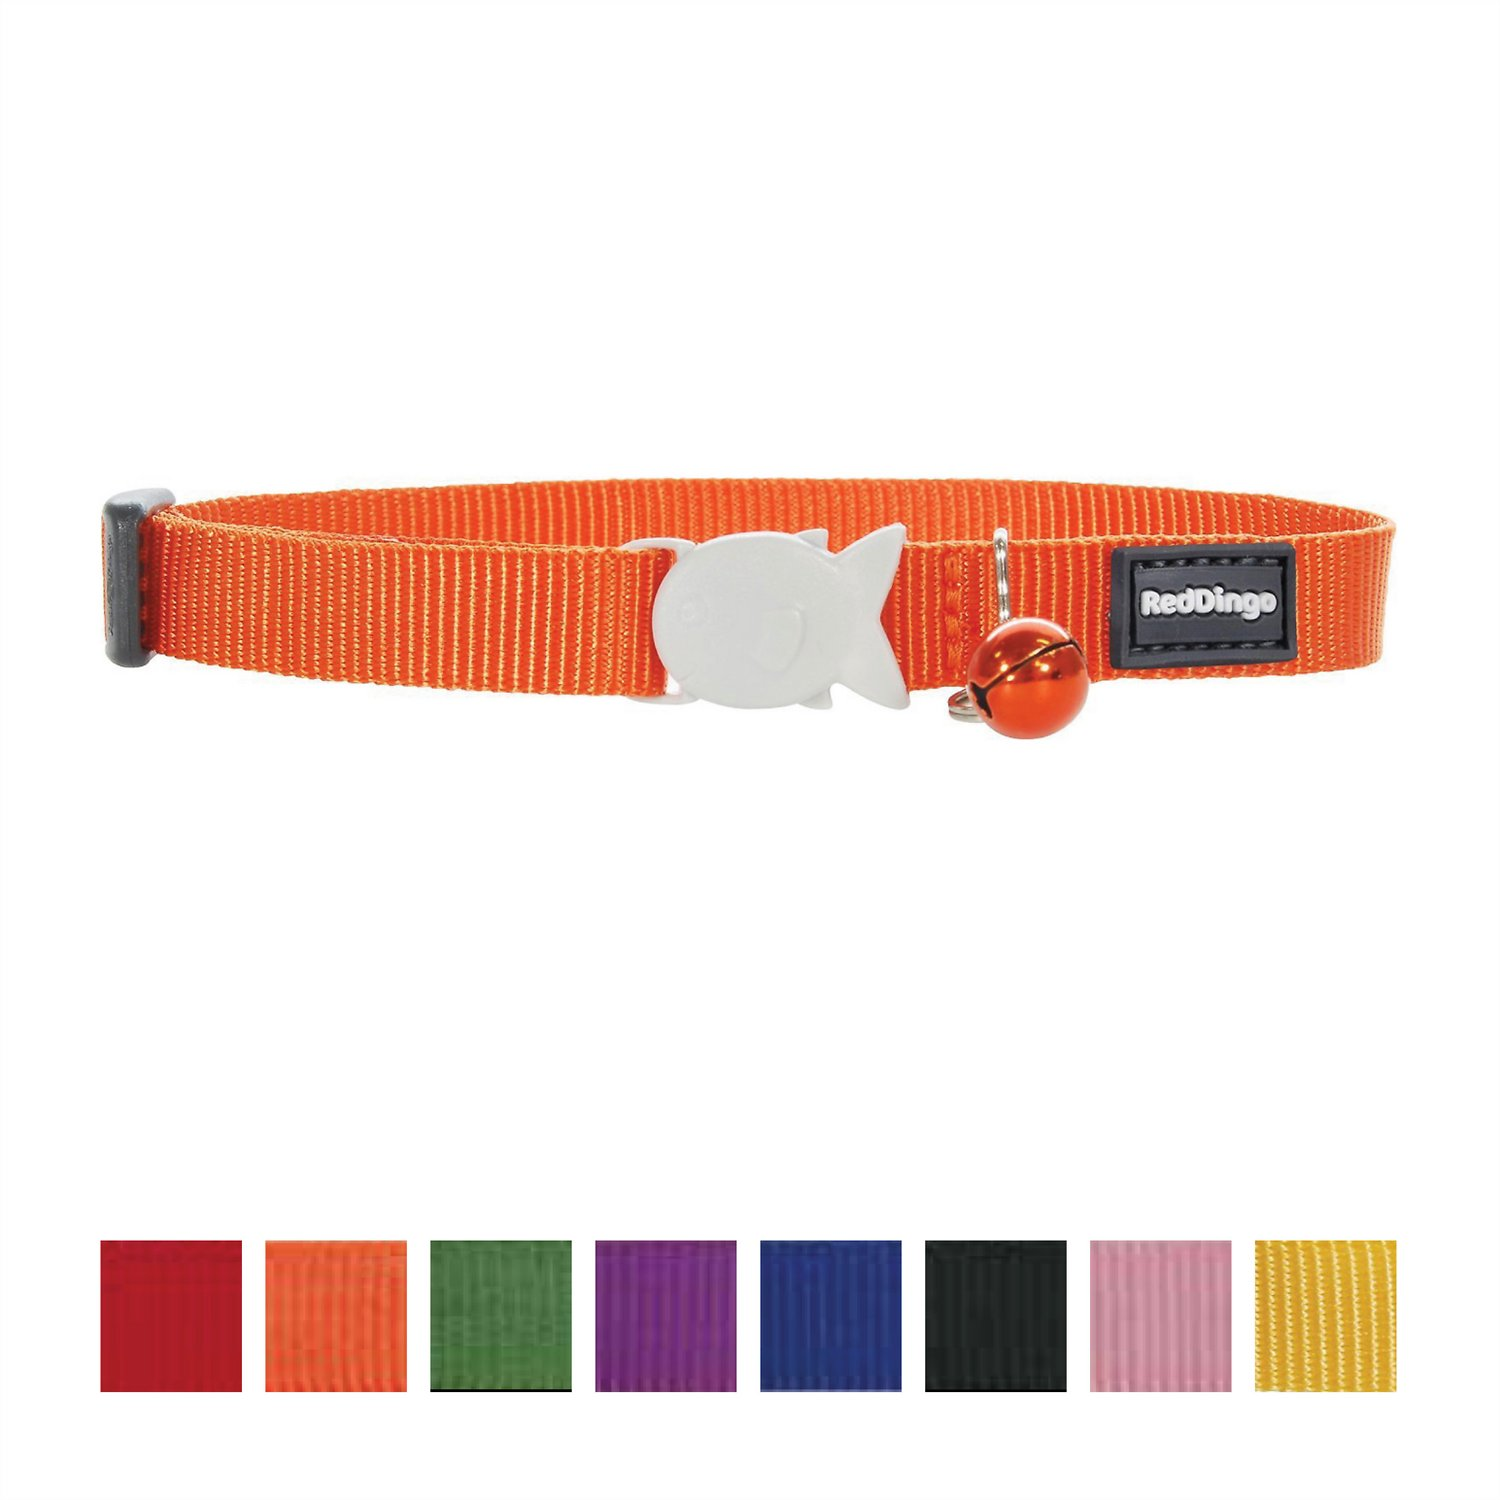 3b98936b48fb Cat & Kitten Collars: Standard, Bell & Breakaway | Chewy